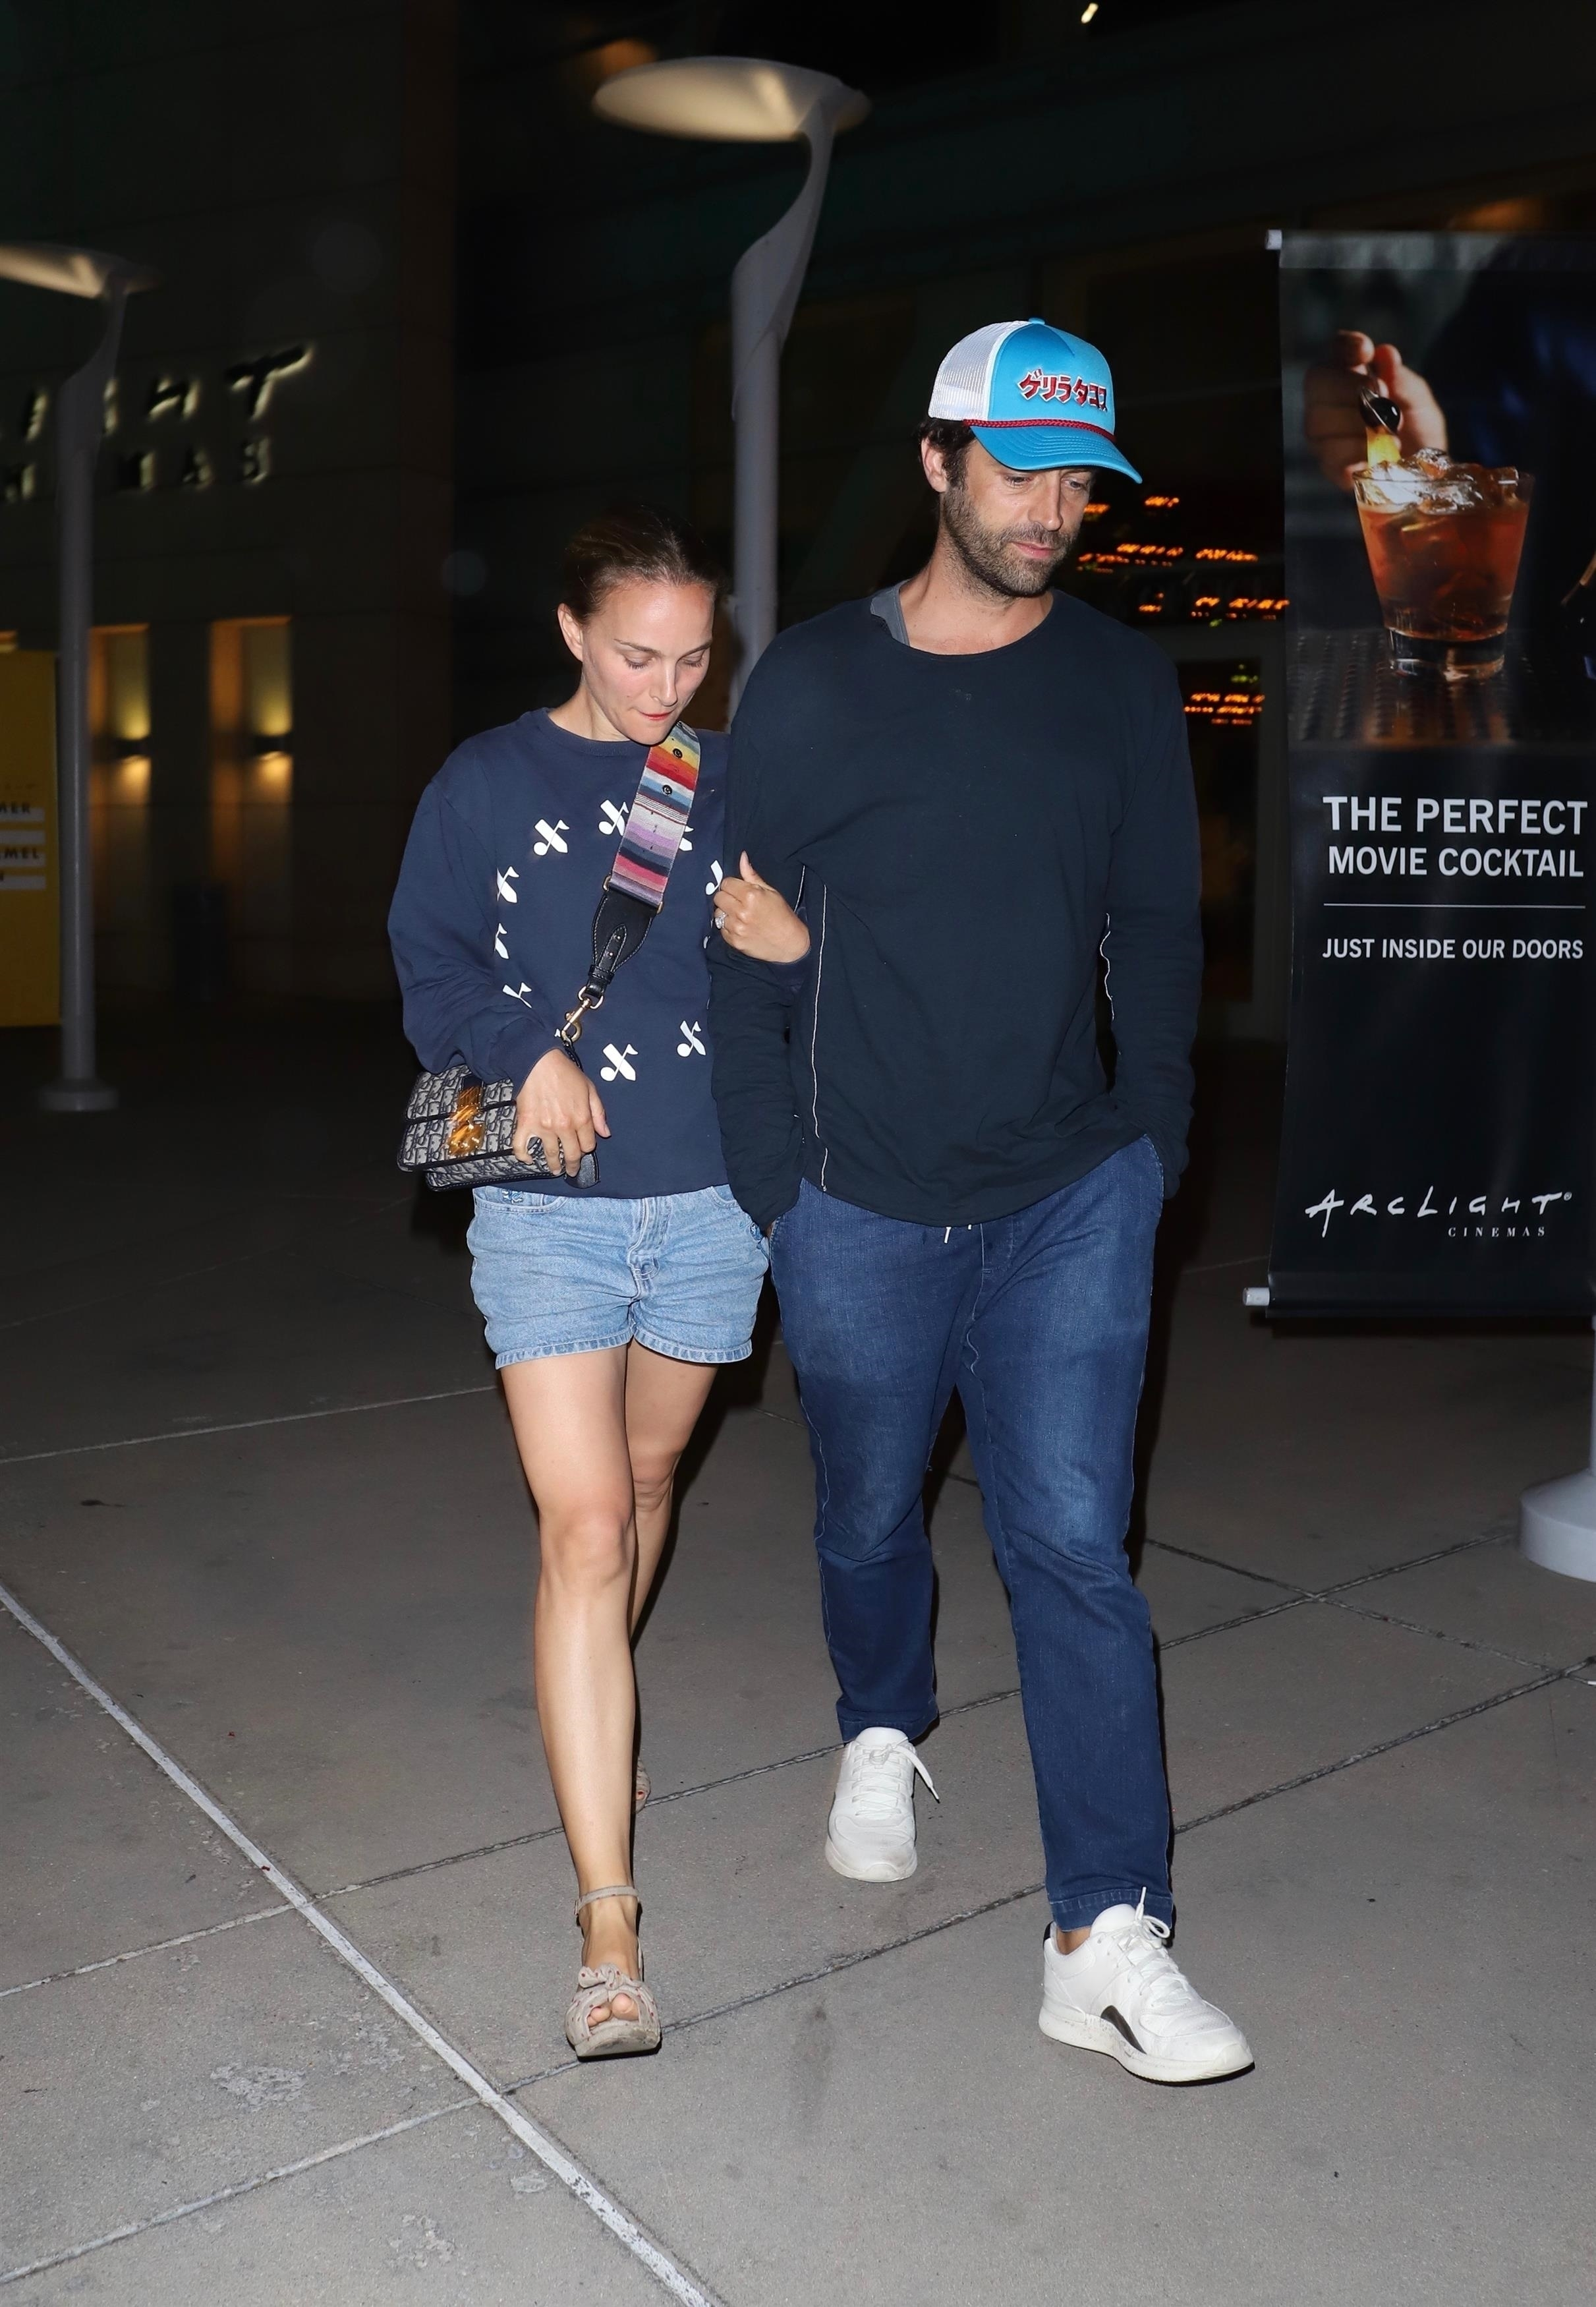 Natalie Portman and Benjamin Millepied enjoyed a date night in Hollywood, CA on July 31, 2019.